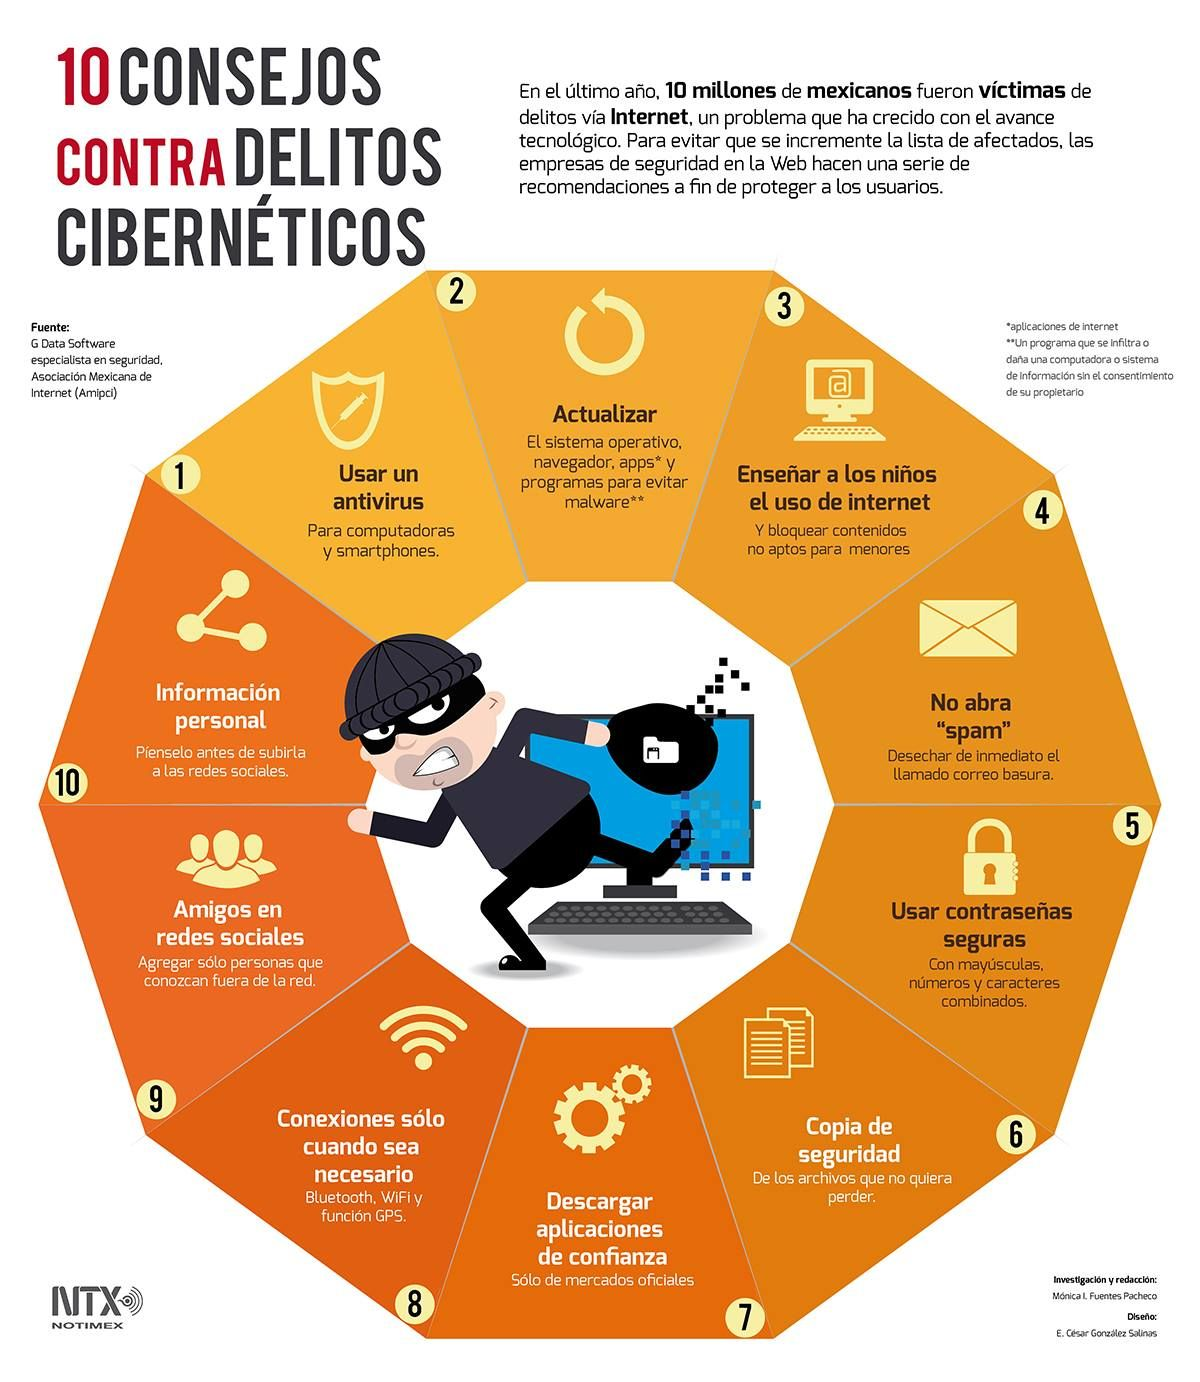 Quenosetepase Seguir Estos 10 Consejos Para No Ser Víctima De Un Ciberdelito Fuente Cybersecurity Infographic Twitter For Business Cyber Security